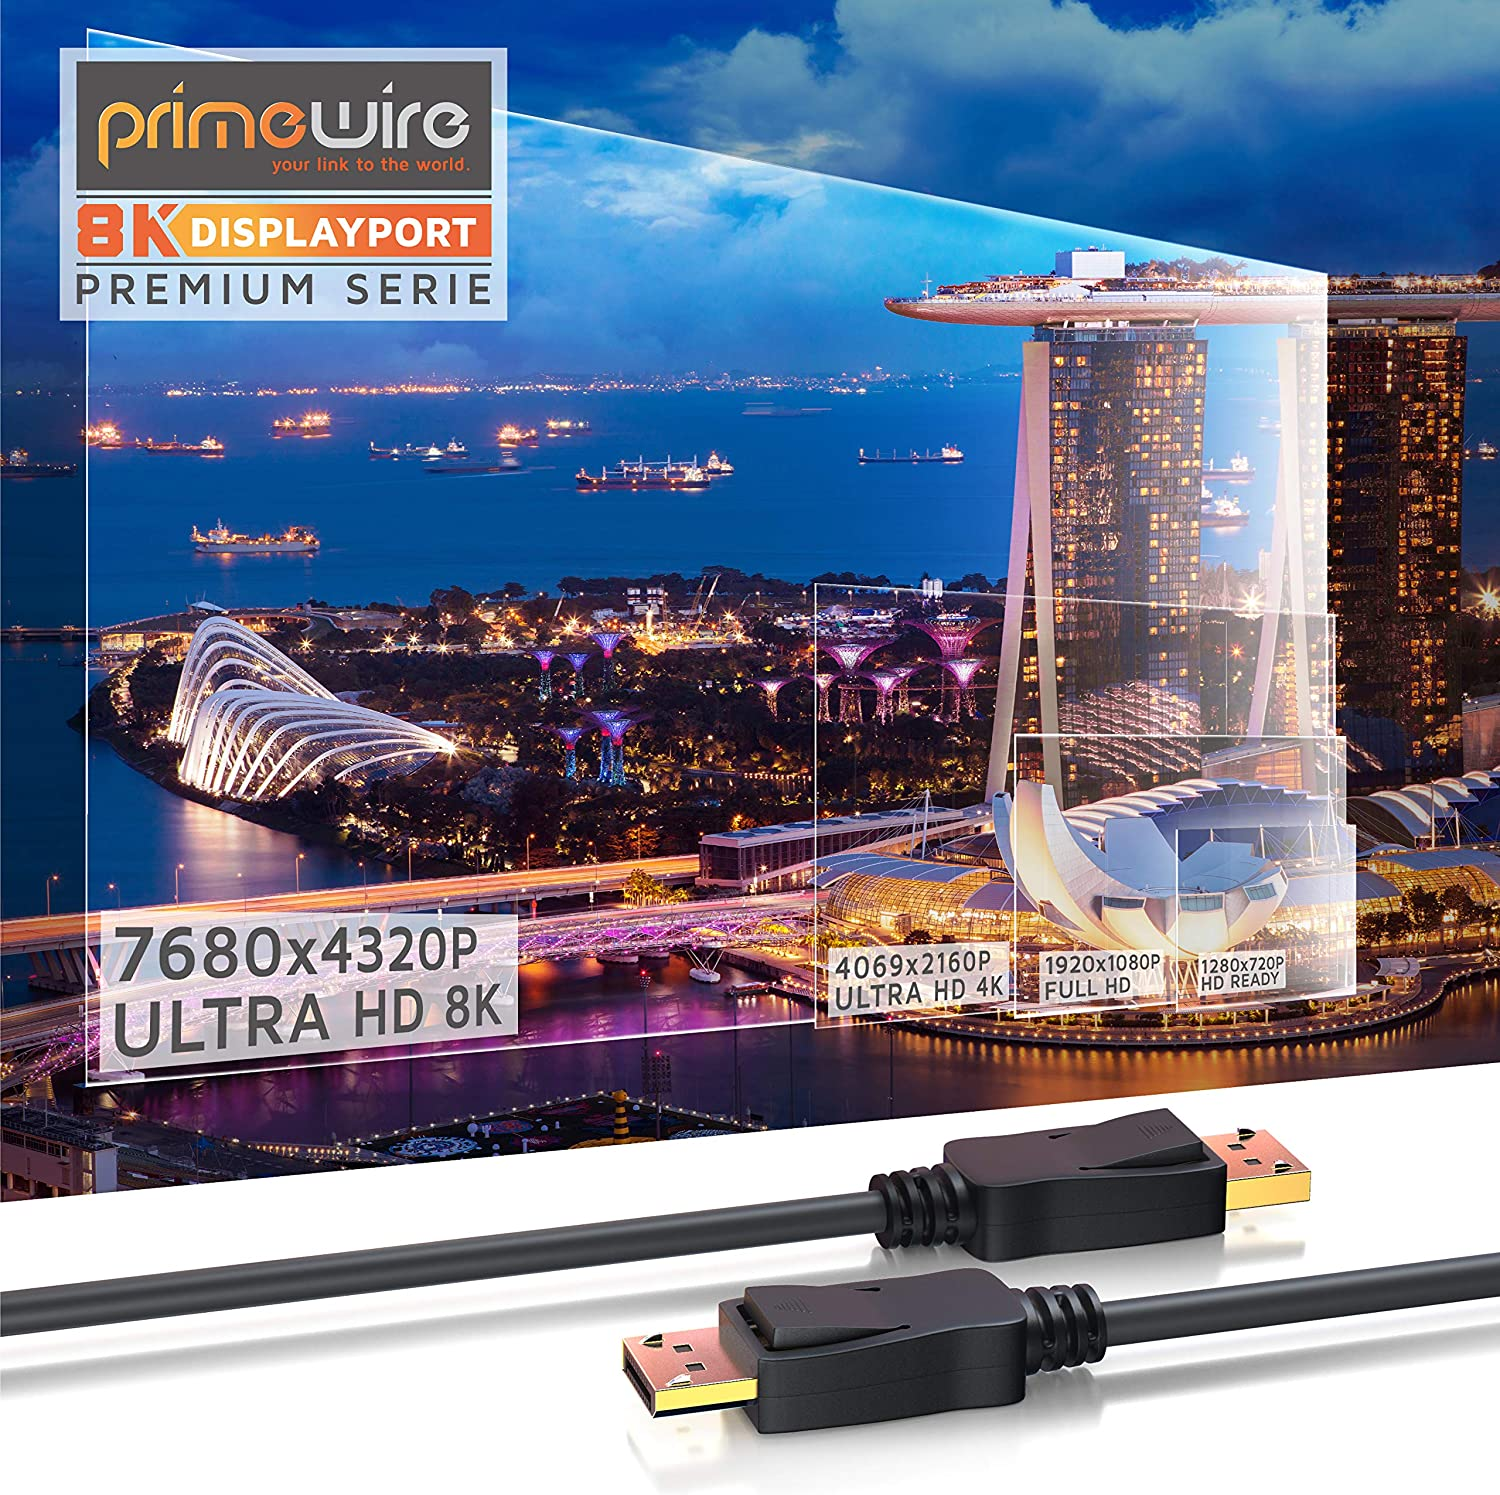 3840 x 2160 x 120 Hz DP 1.4 to DP 1.4-7680 x 4320 x 60 Hz HBR3 black DSC 1.2 Primewire 1920 x 1200 x 240 Hz Bandwidth up to 32,4 Gbit s HDR 10 8k DisplayPort Cable 2m